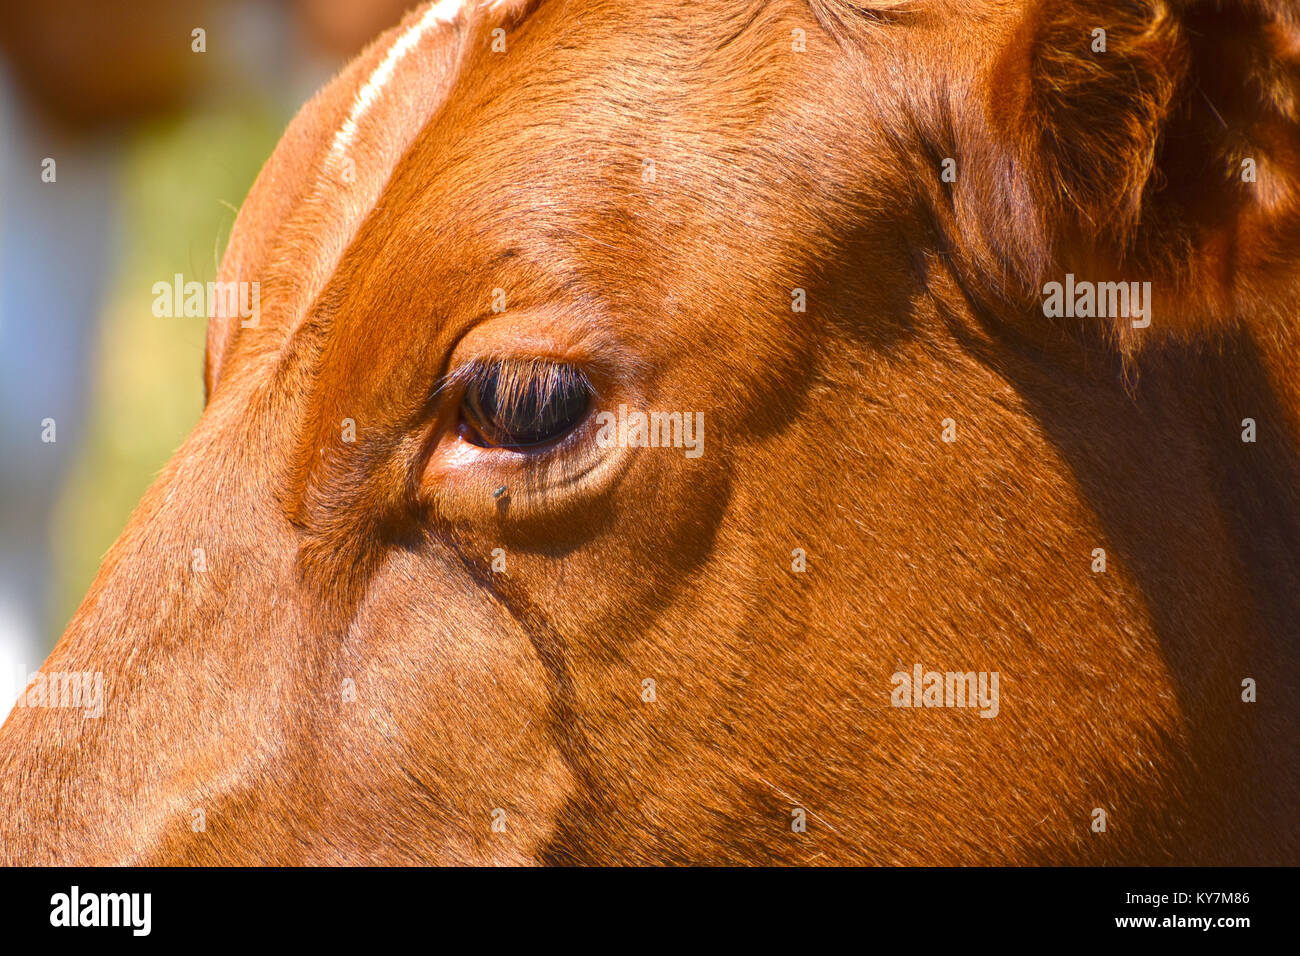 Cows eye close up with fluid that has run down from her watery eyes.  One fly has landed just below her eye. - Stock Image